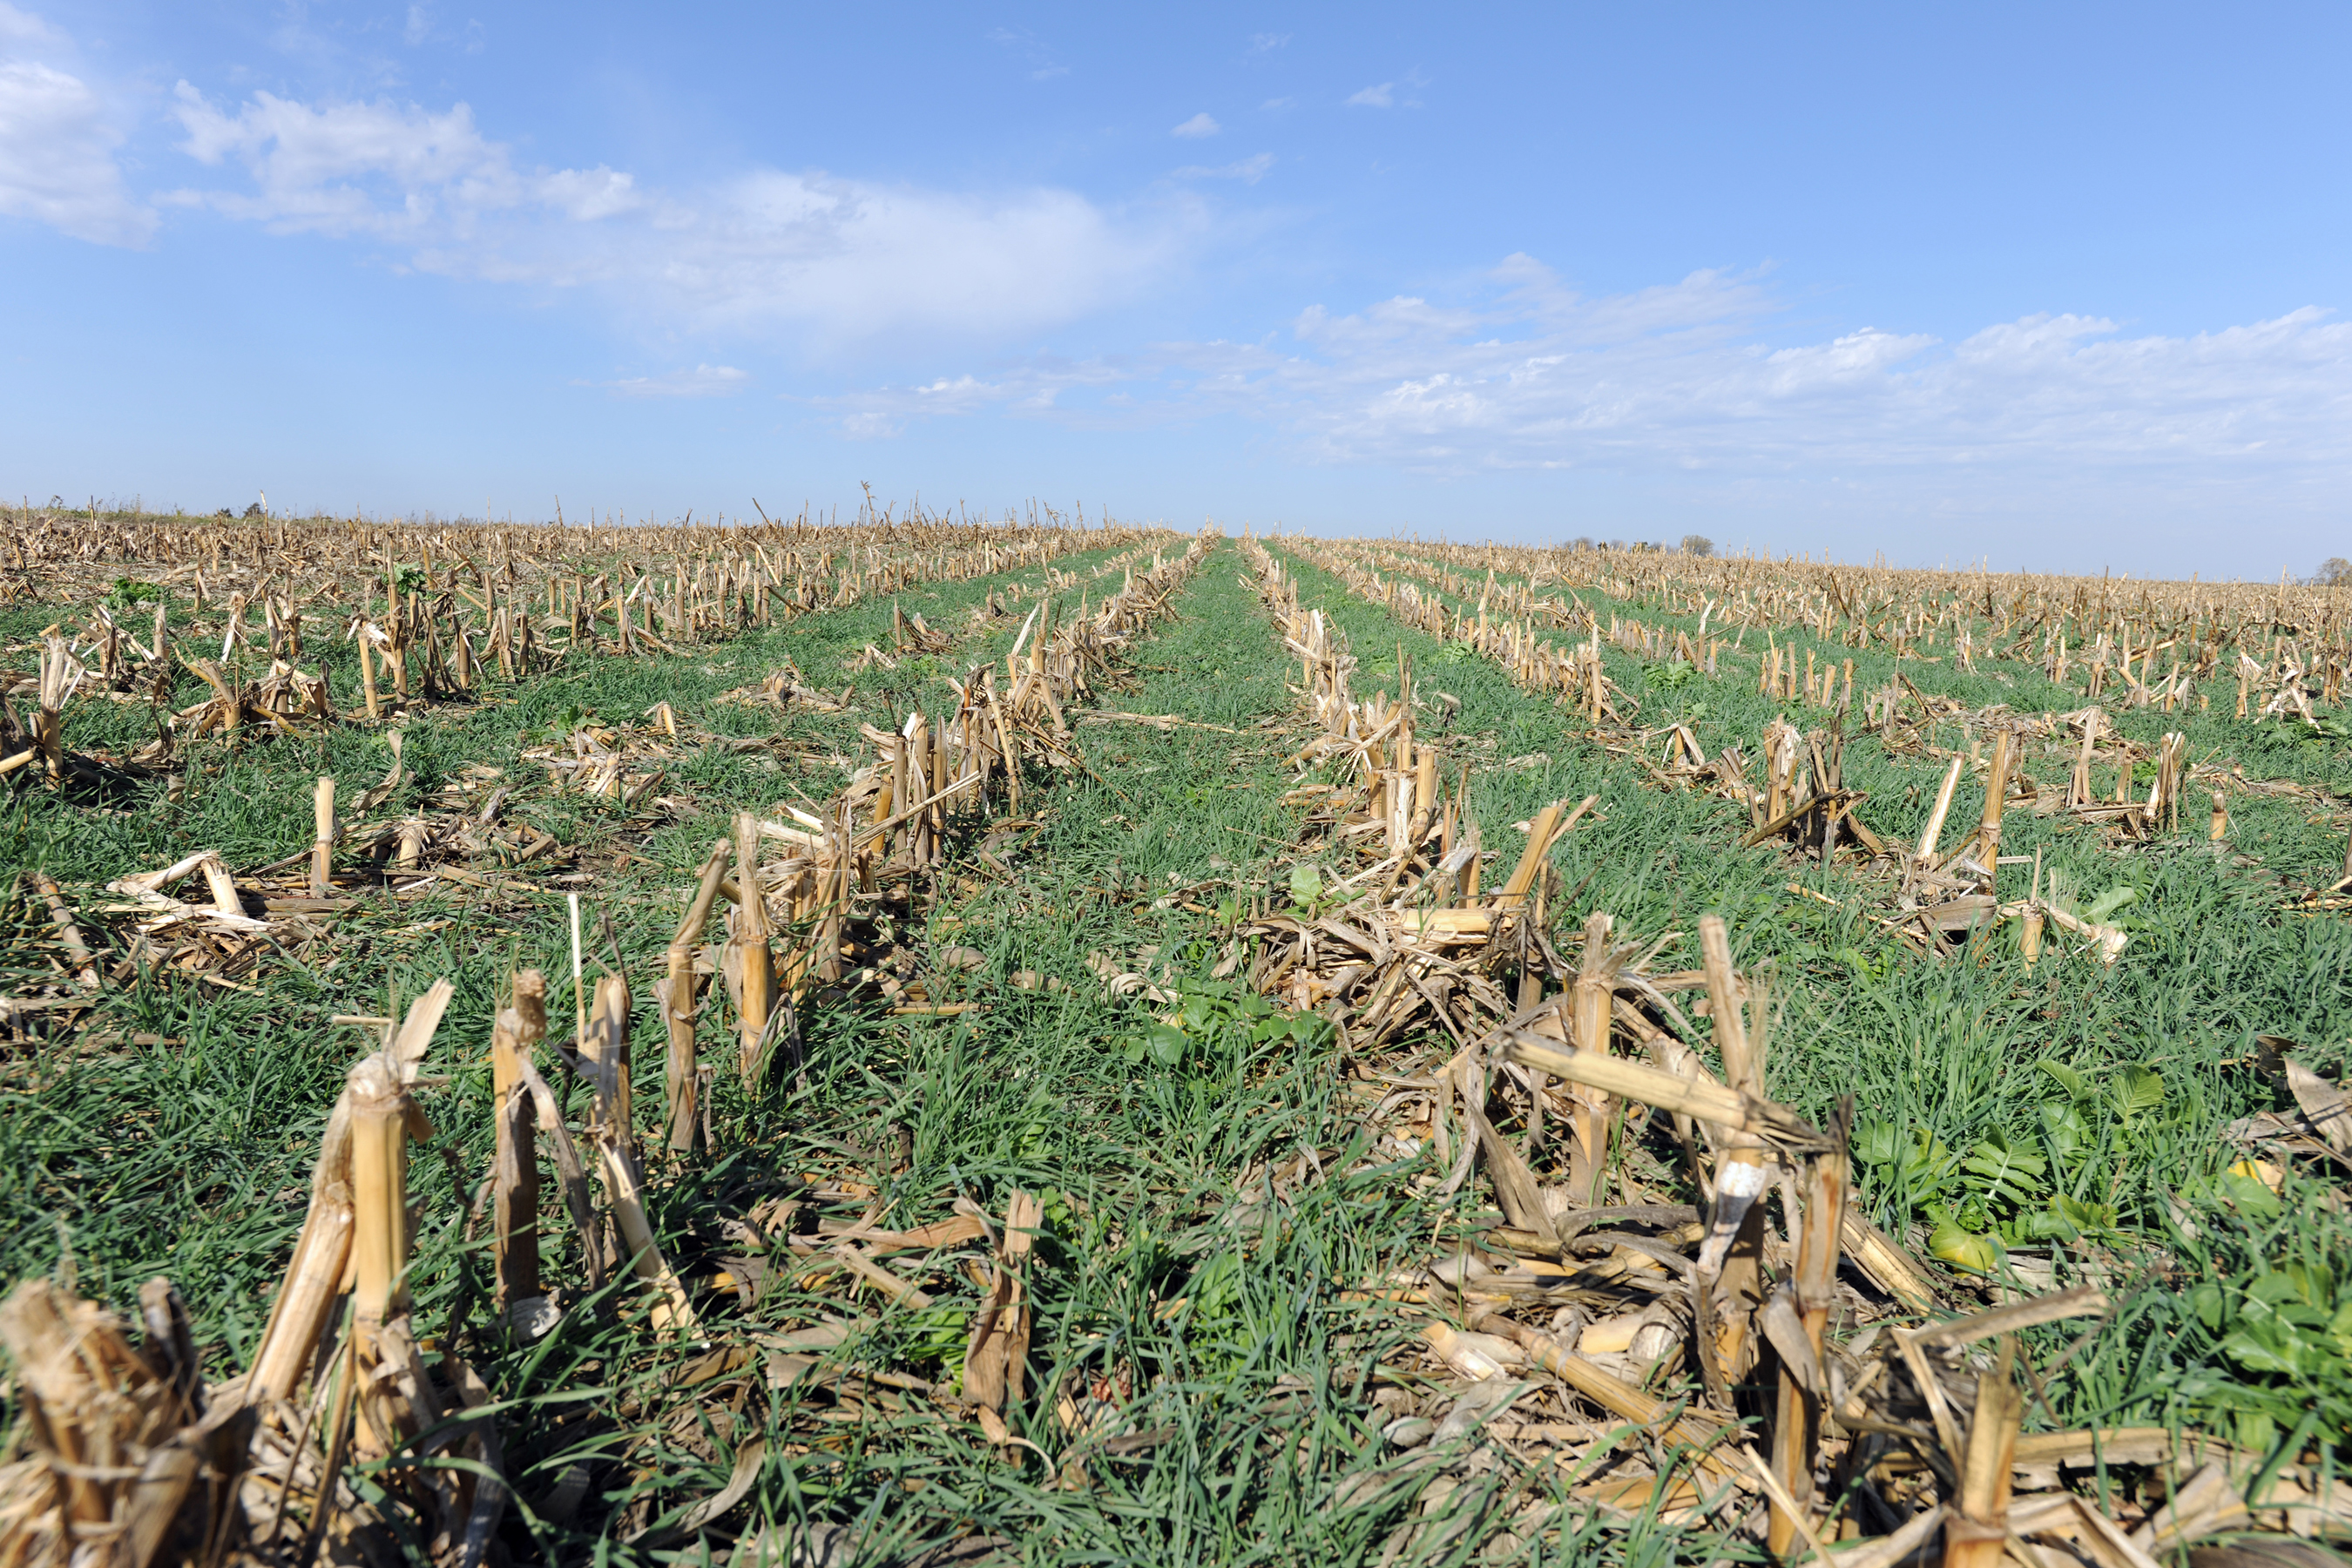 A cereal rye cover crop grows into corn stubble after harvest.